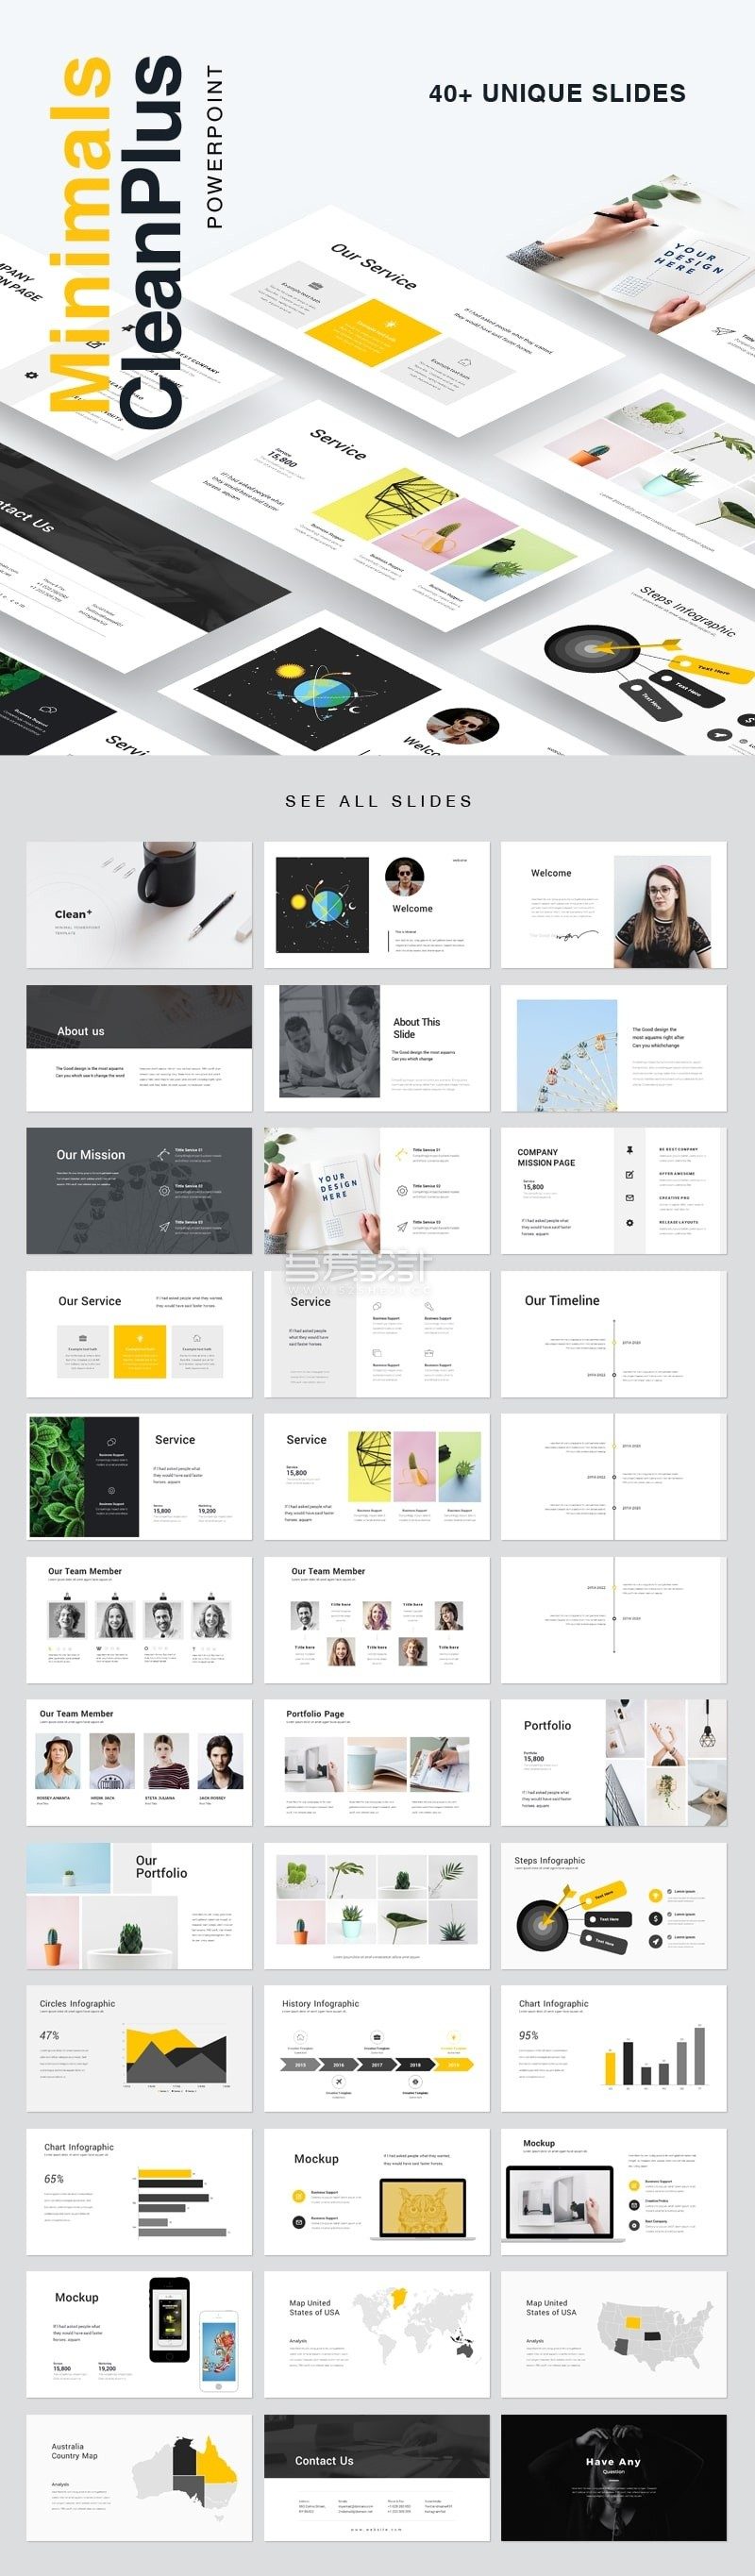 clean-plus-powerpoint-1629-preview_a9